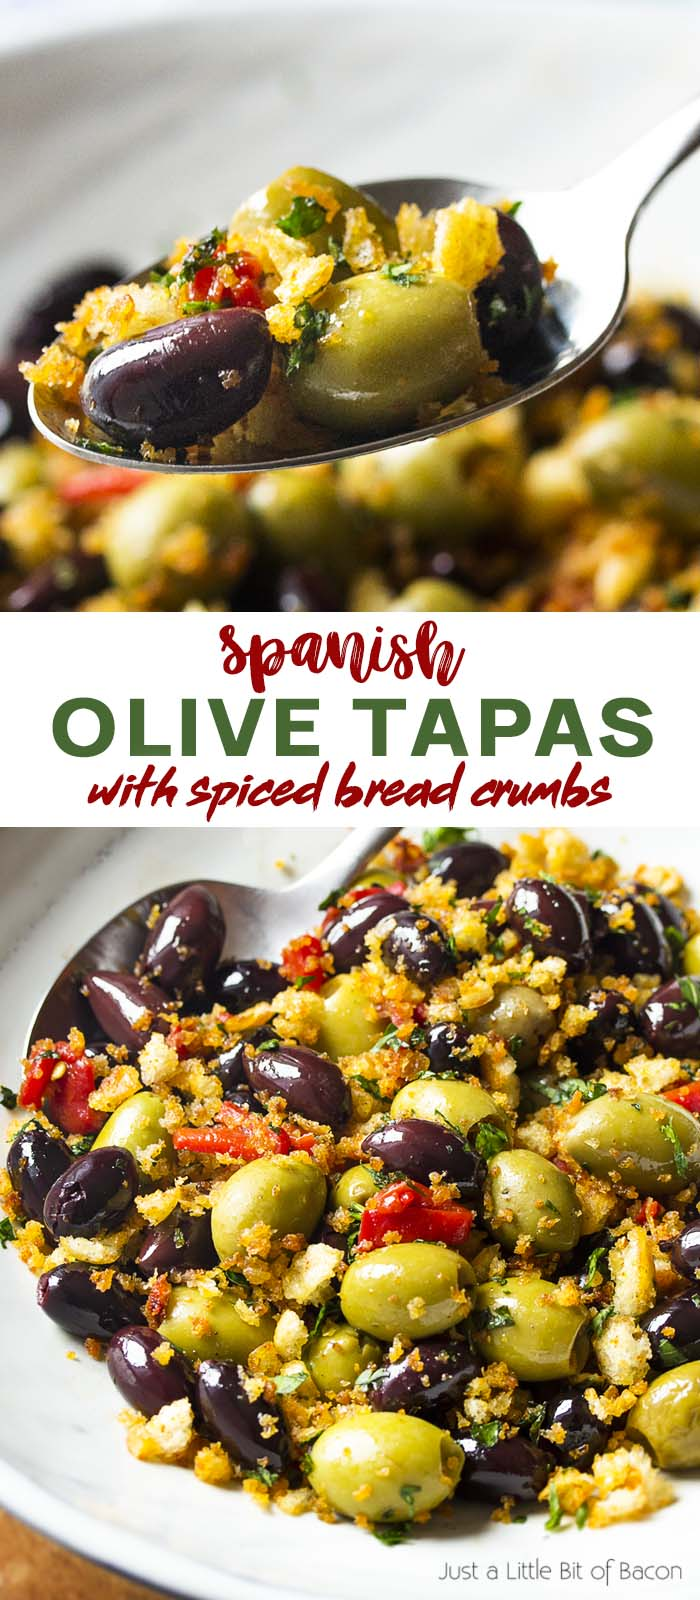 Recipe in a serving bowl and a spoon with text overlay - Spanish Olive Tapas.